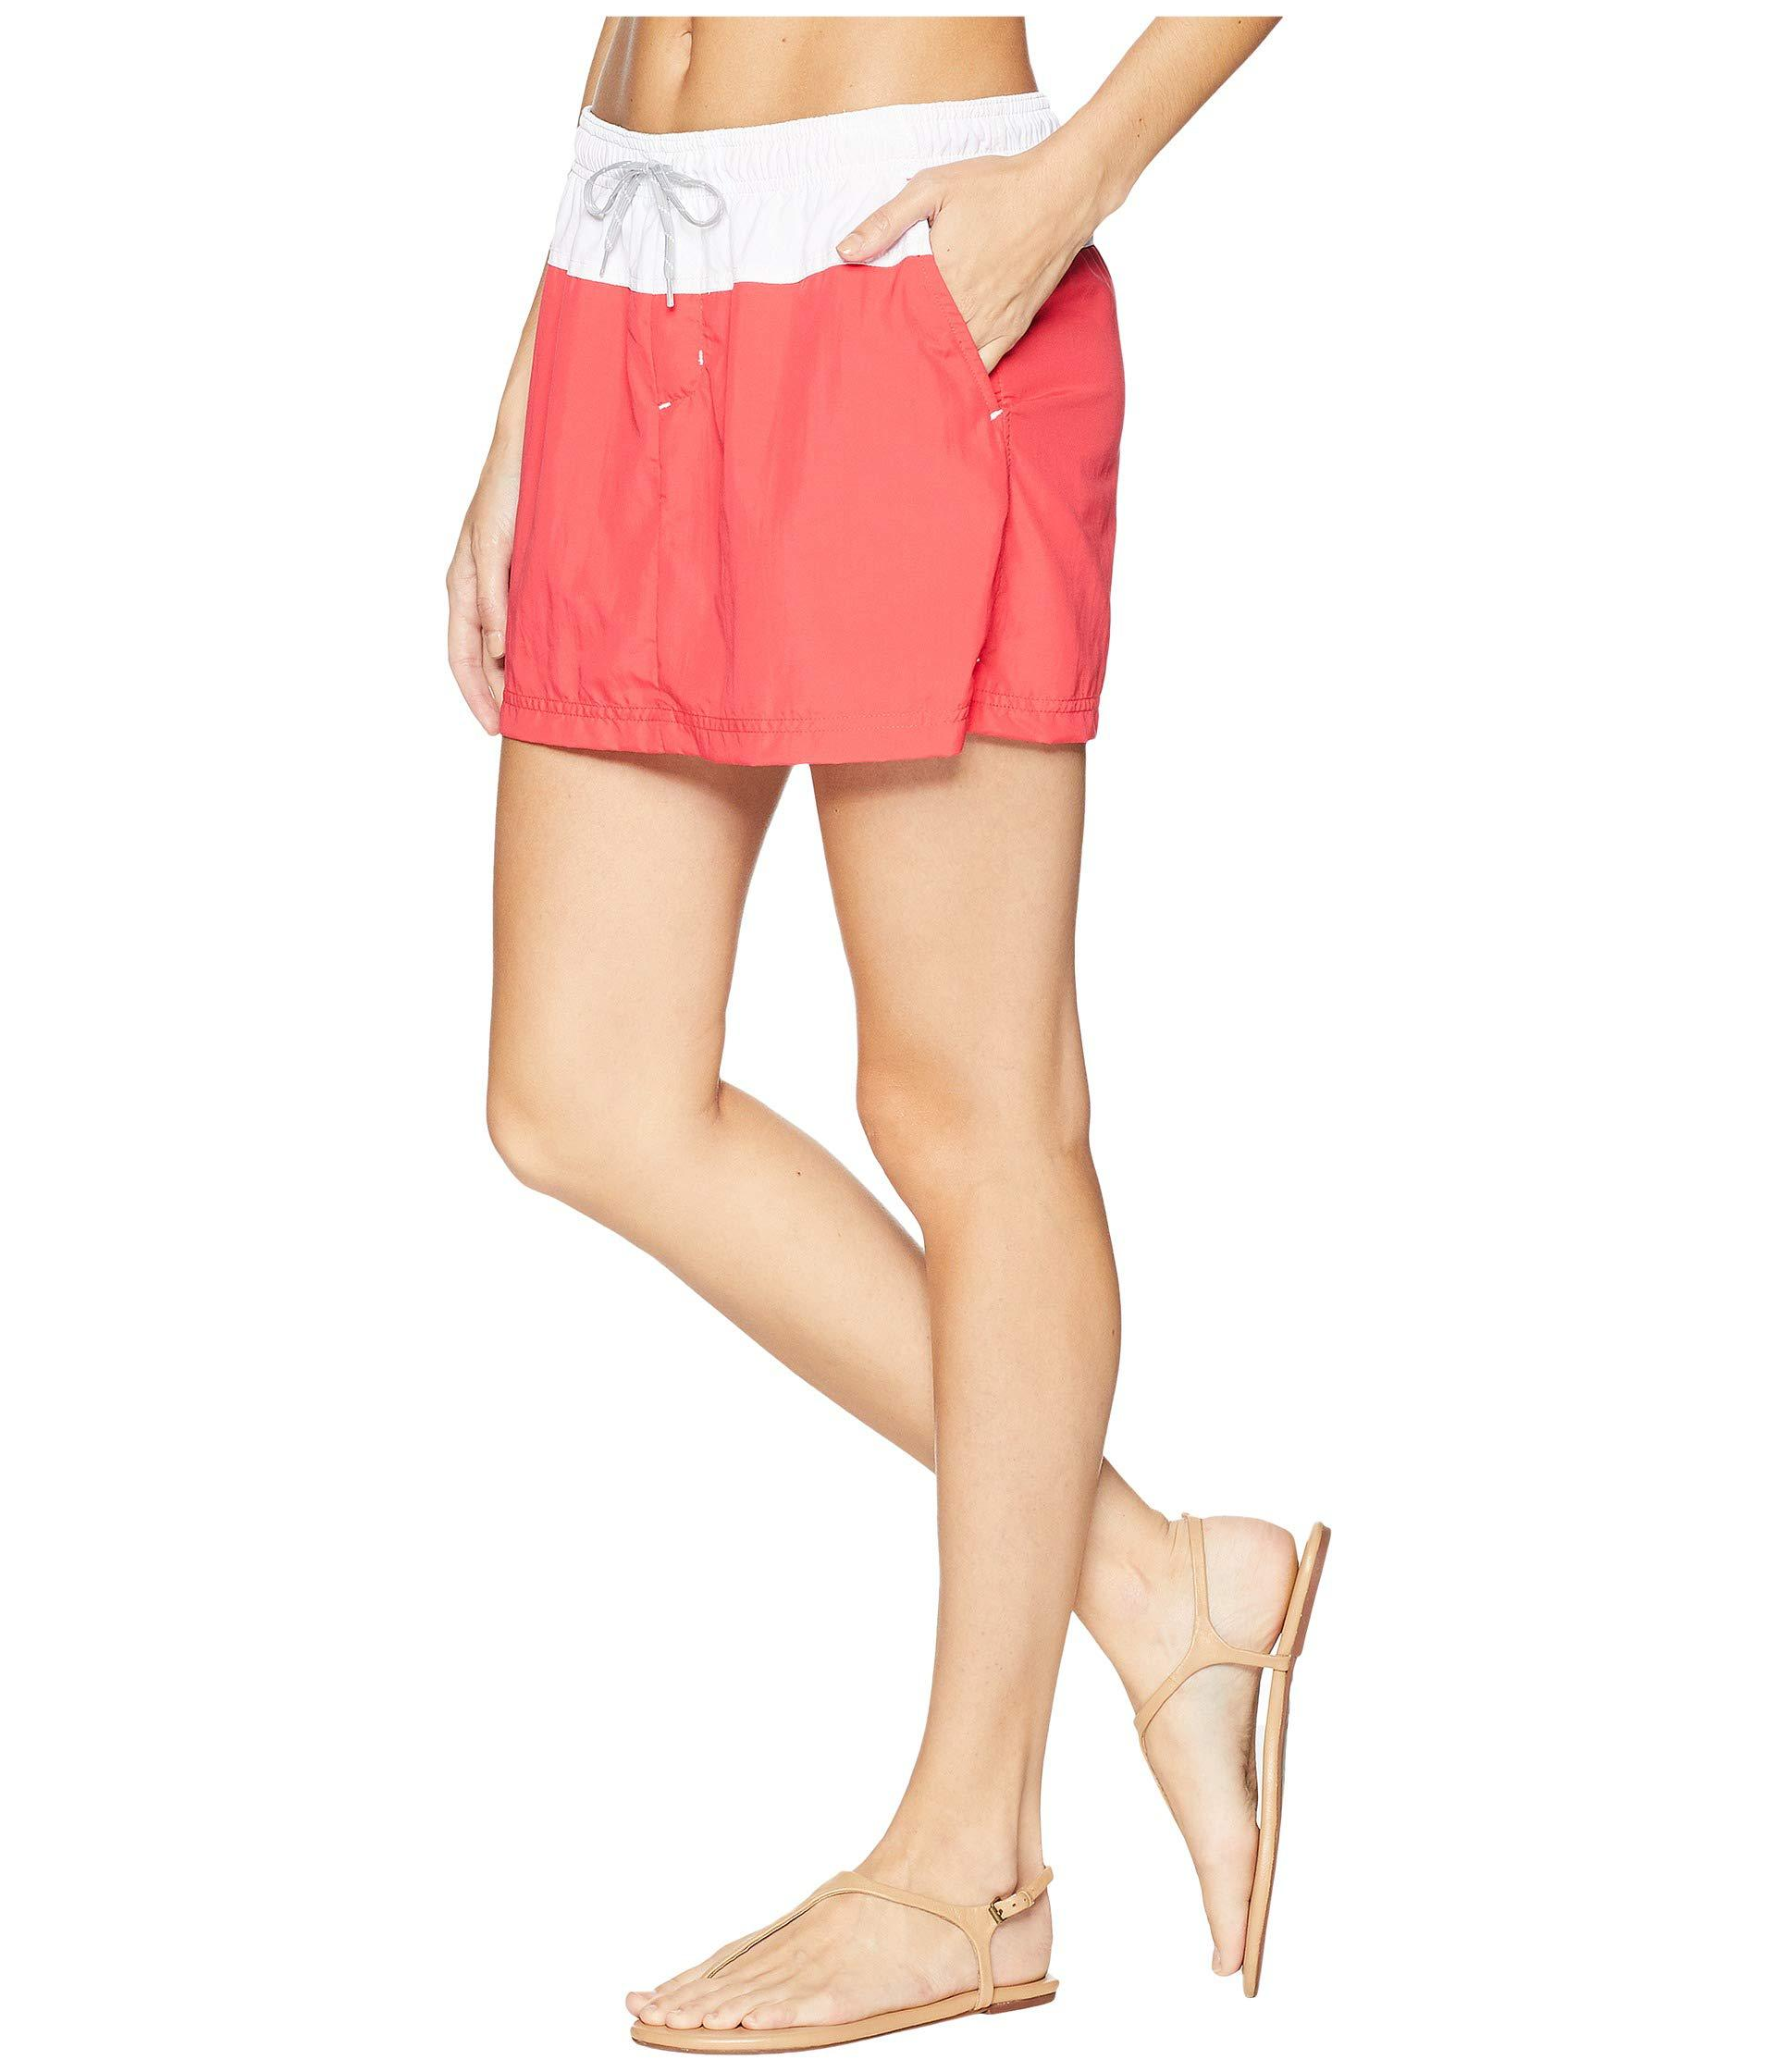 b2577c11efa76 Lyst - Columbia Plus Size Sandy River Skort in Red - Save 6%